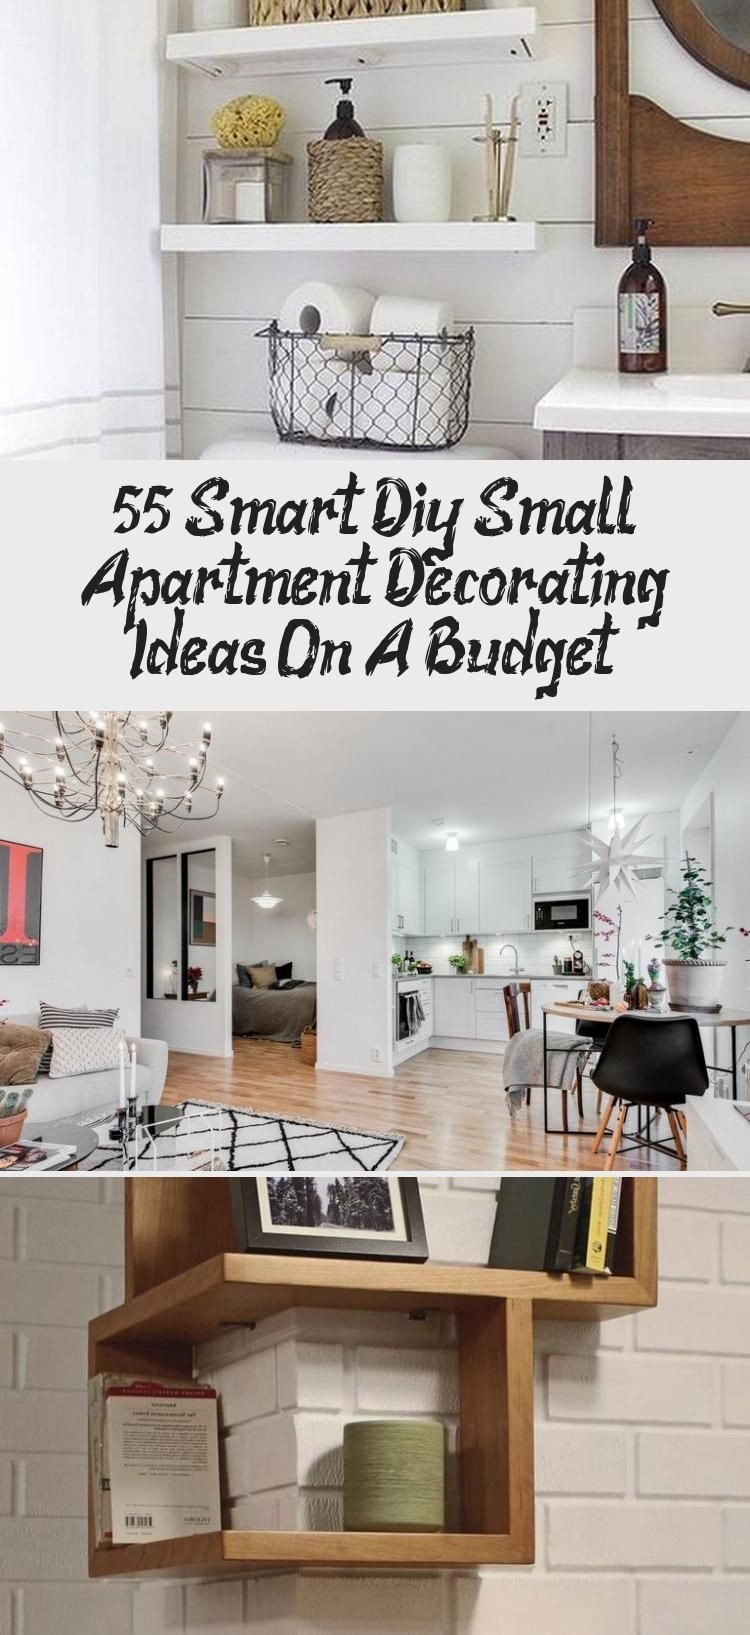 55+ Smart Diy Small Apartment Decorating Ideas On A Budget - Decor Zone -  55+ Smart DIY Small Apartment Decorating Ideas on A Budget #apartmentgardening #apartmentdecor #apa - #Apartment #Budget #Decor #Decorating #diy #Ideas #shabbychicdecoronabudget #Small #Smart #Zone